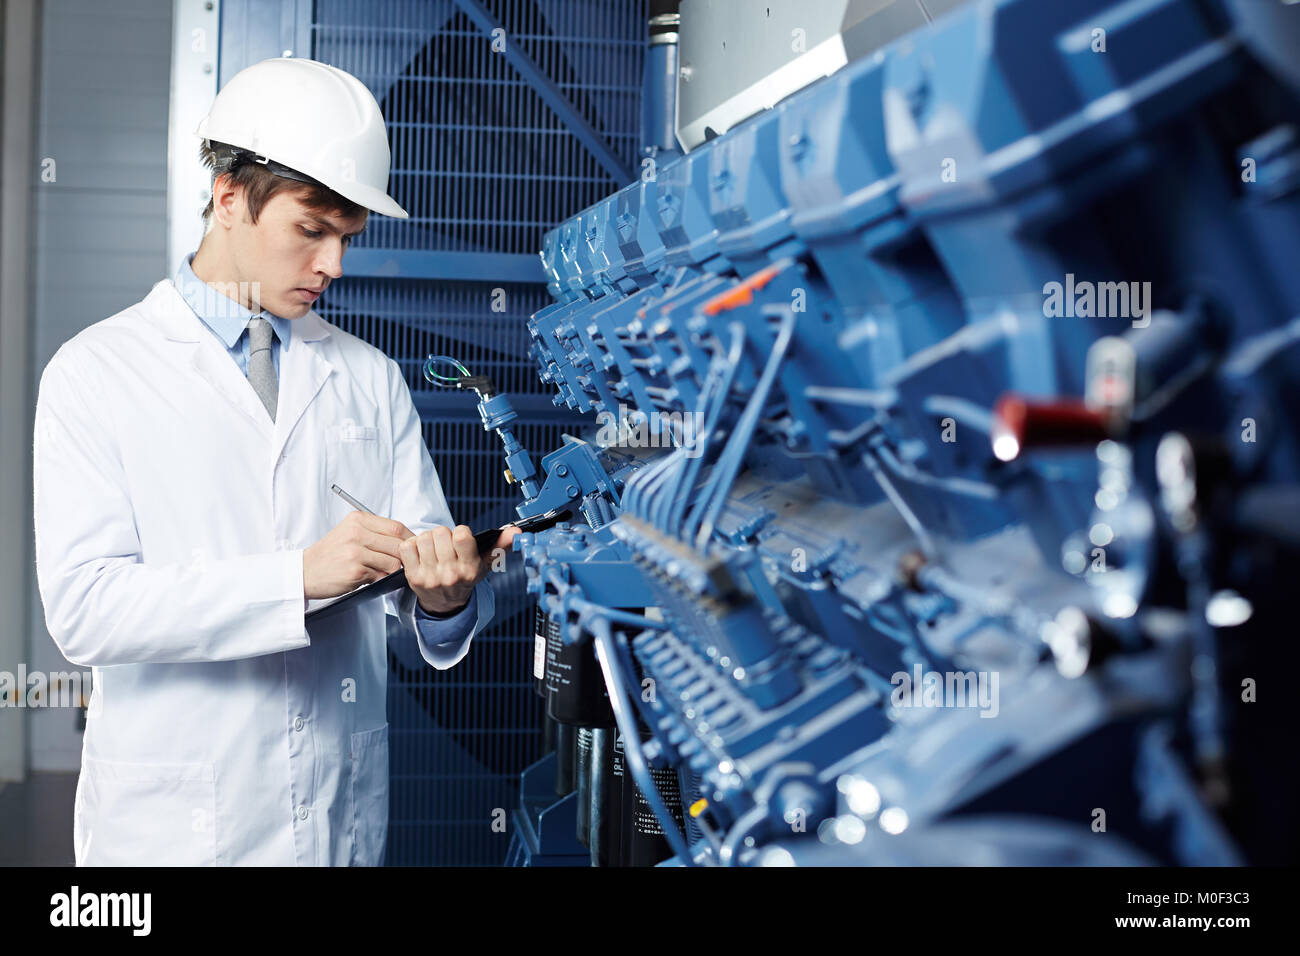 Working in technical lab - Stock Image